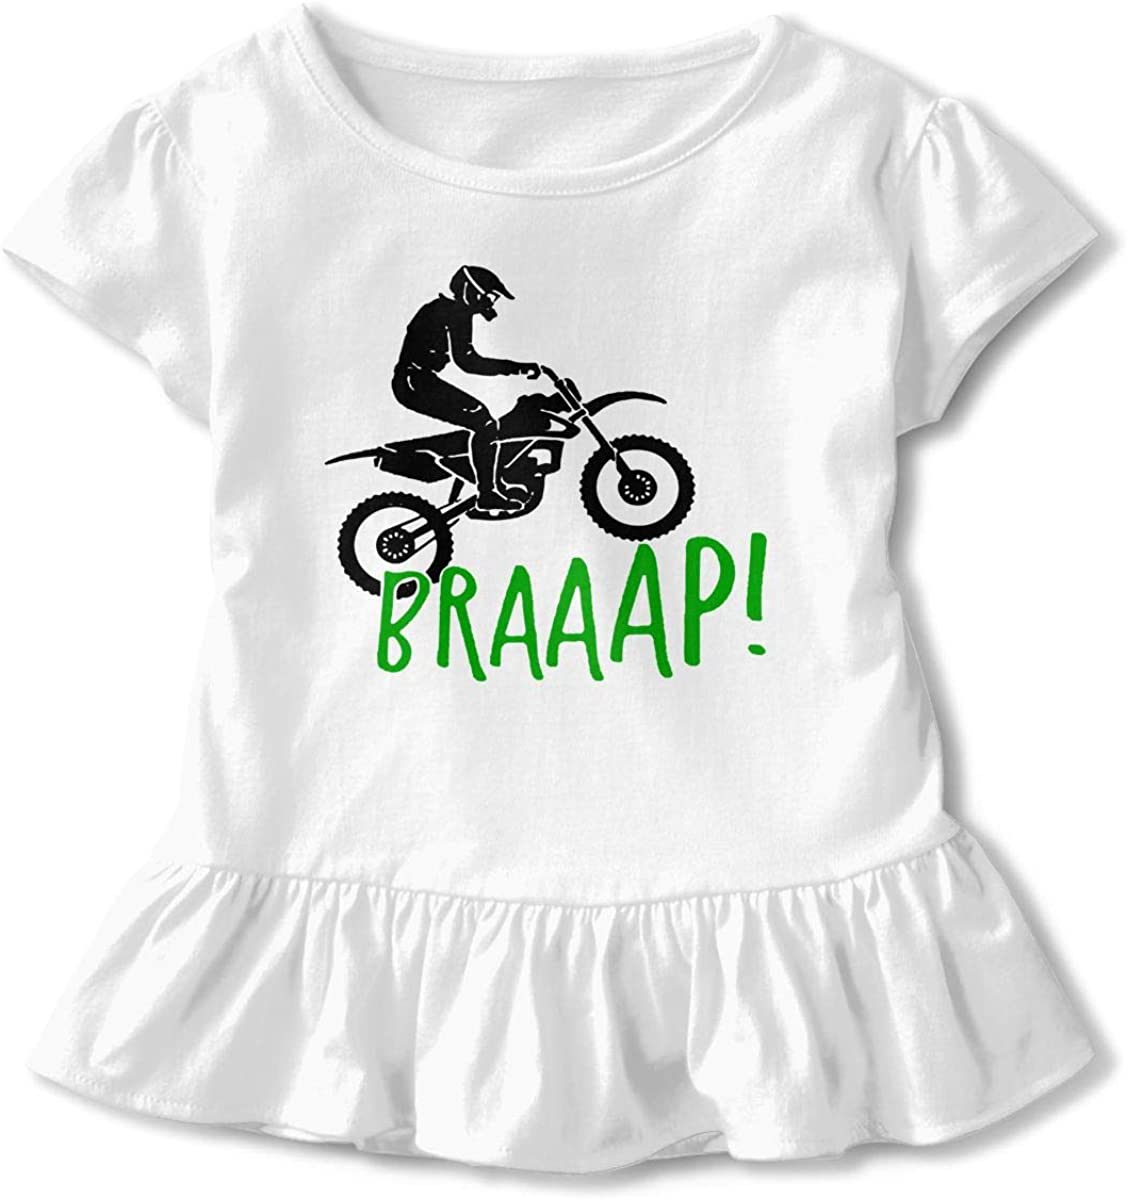 HYBDX9T Toddler Baby Girl Braaap Funny Short Sleeve Cotton T Shirts Basic Tops Tee Clothes